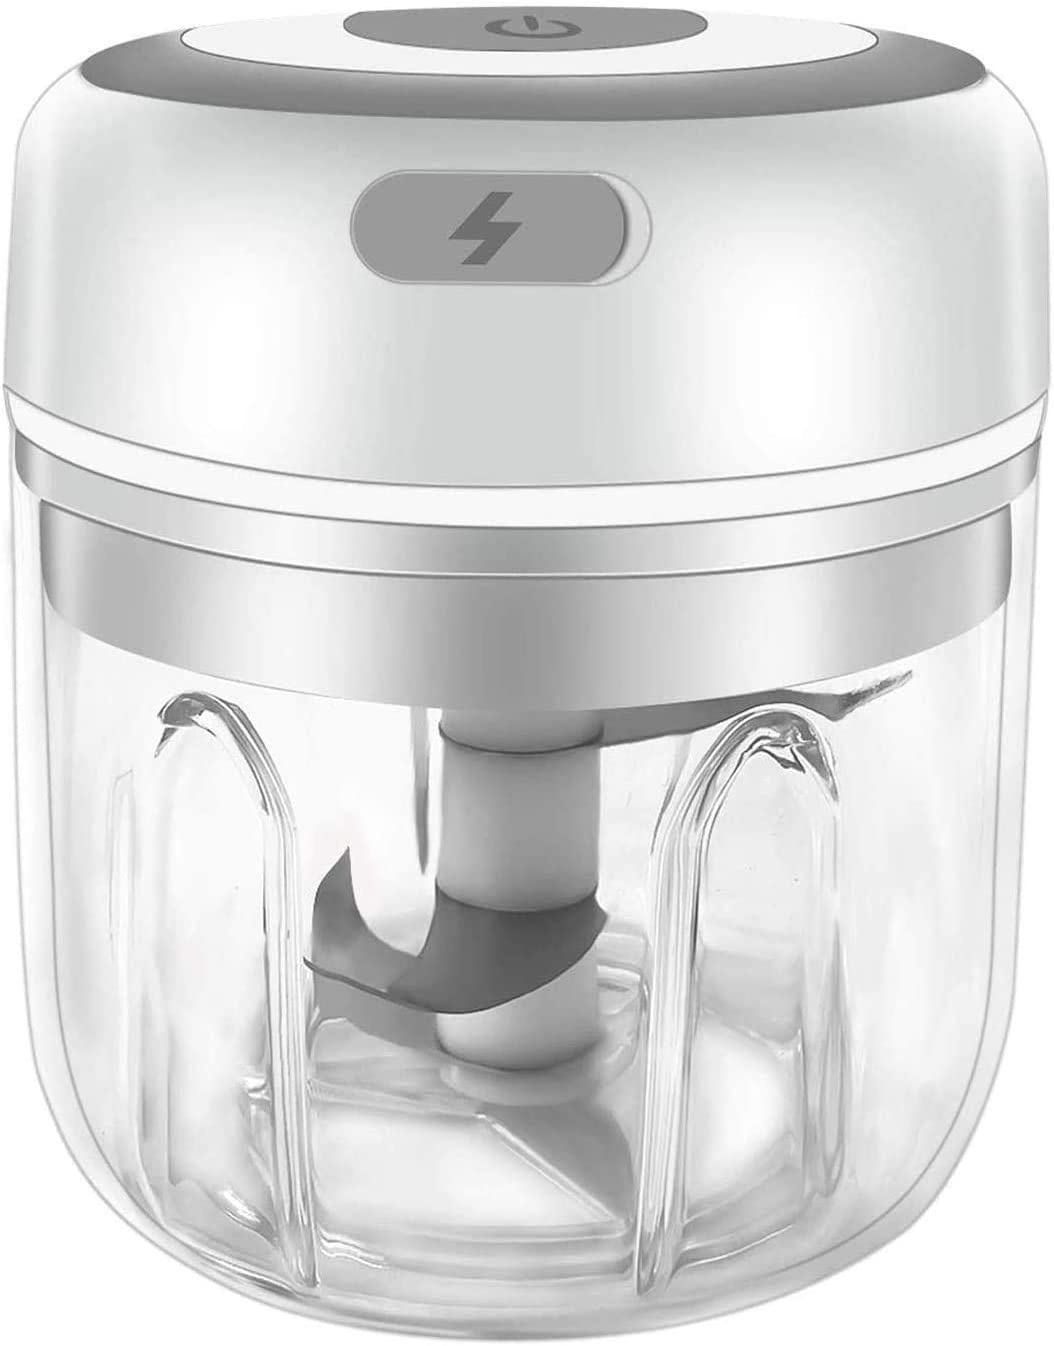 Electric Mini Garlic Chopper Mincer,Portable Cordless Vegetable Food Processor with USB Charging, Rechargeable Powerful Blender for Onion, Grinder, Meat and Salad